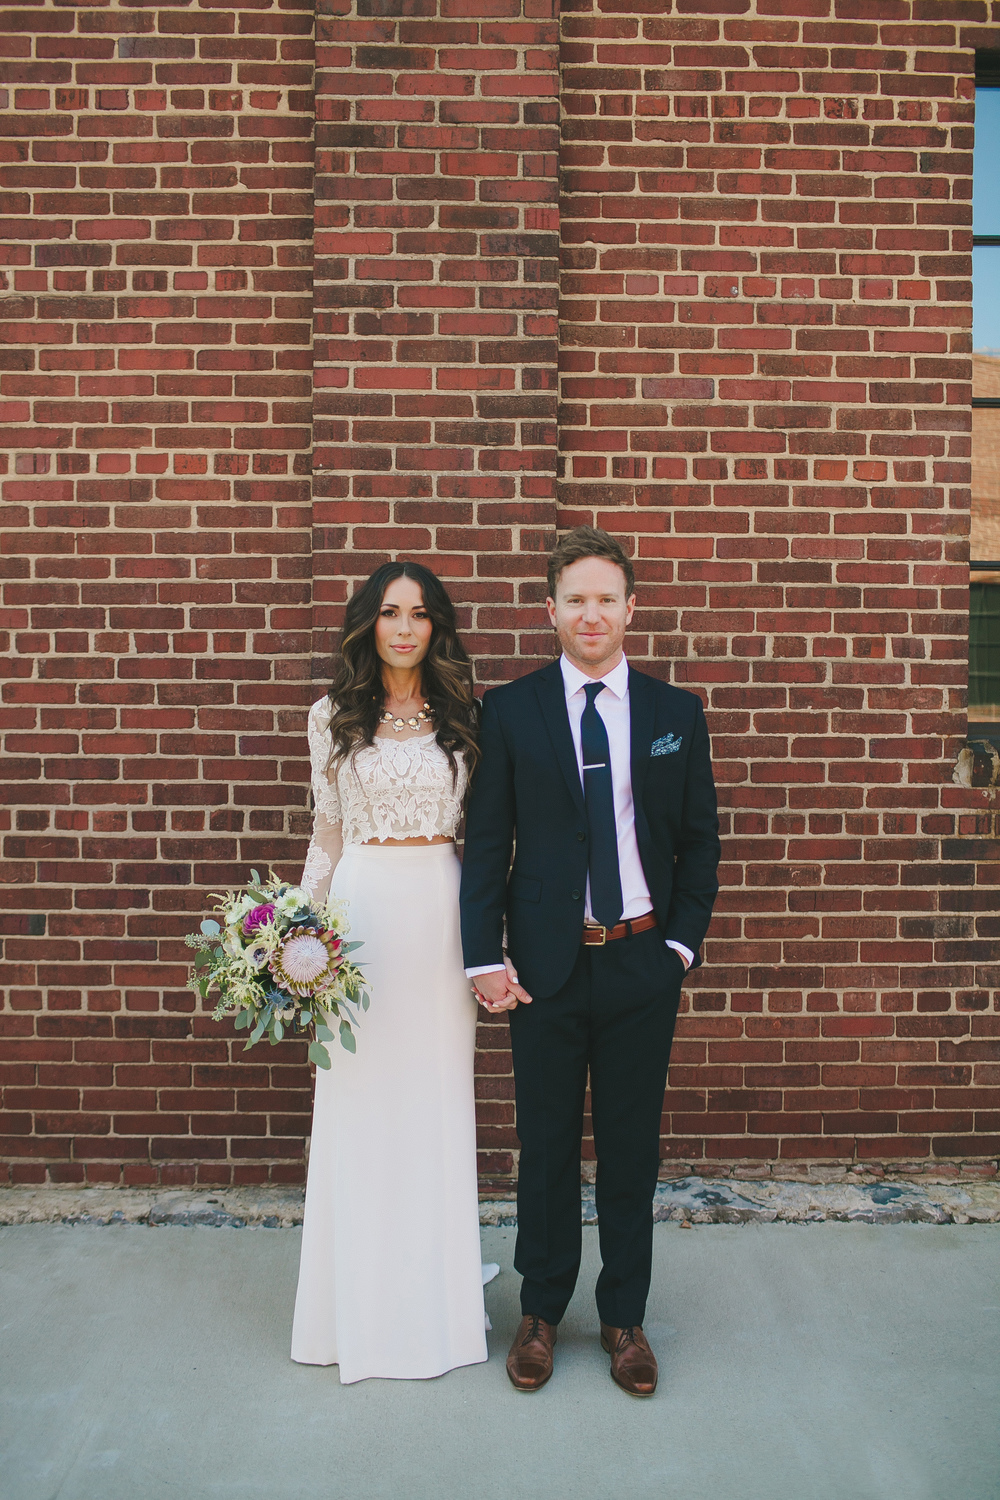 Stylish Bride and Groom // Nashville Wedding Flowers